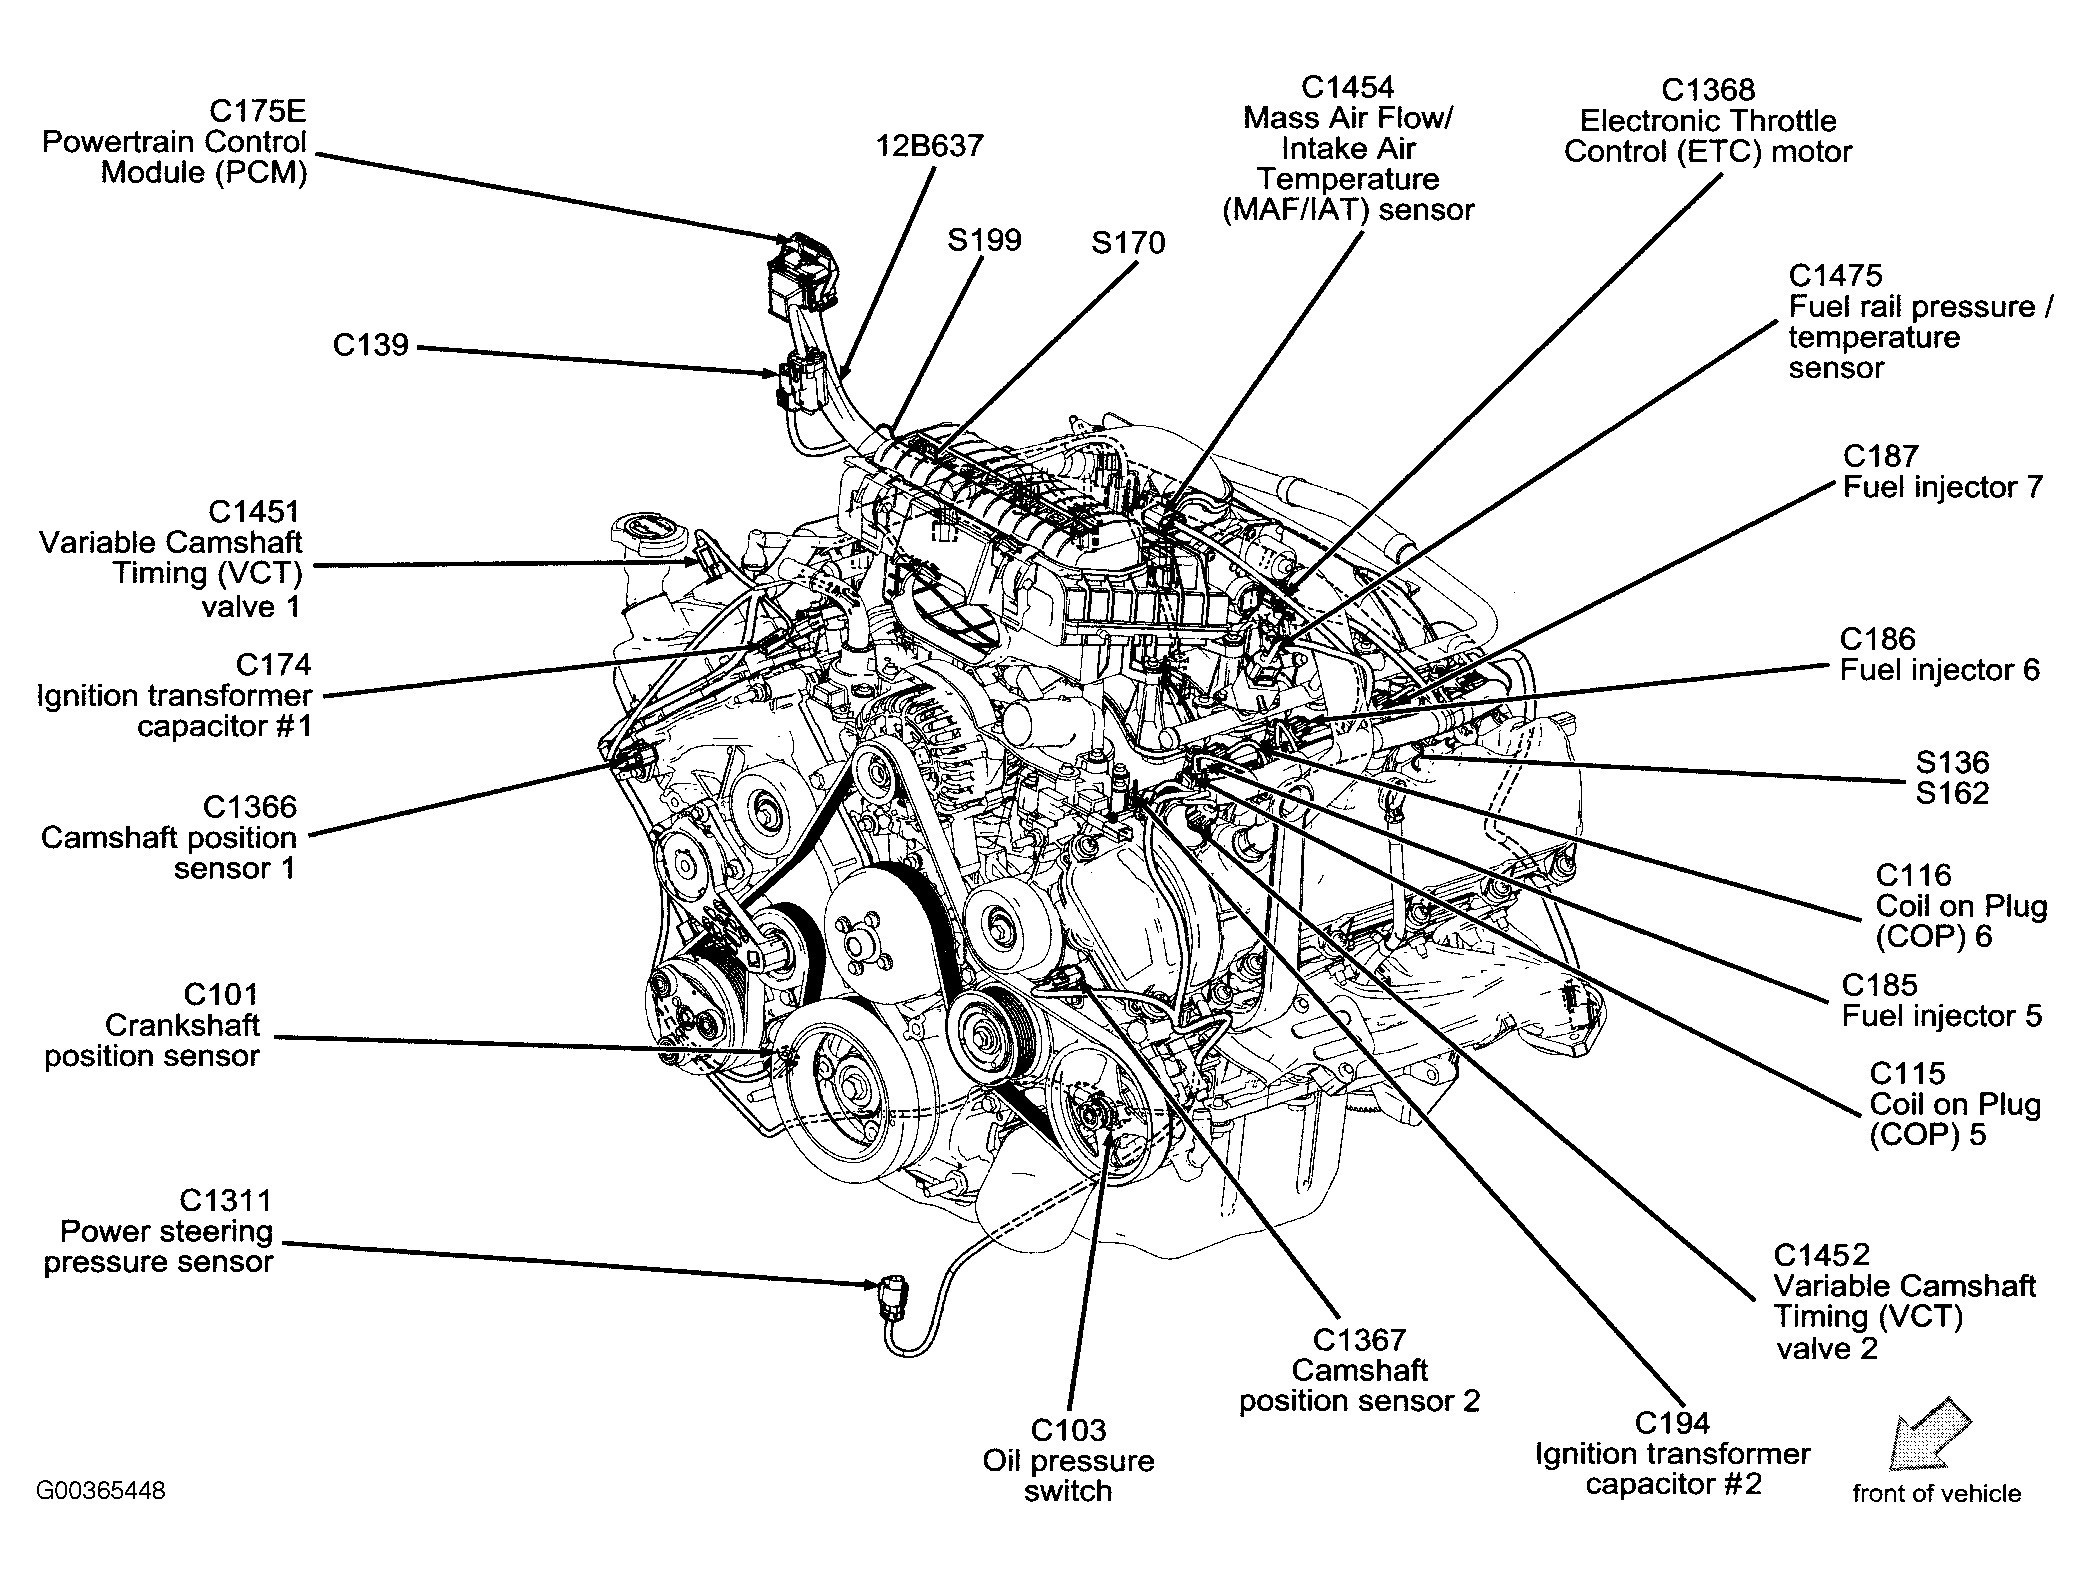 Northstar Engine Diagram north Star 4 6 Engine Diagram Of Northstar Engine Diagram Cadillac V8 Engine